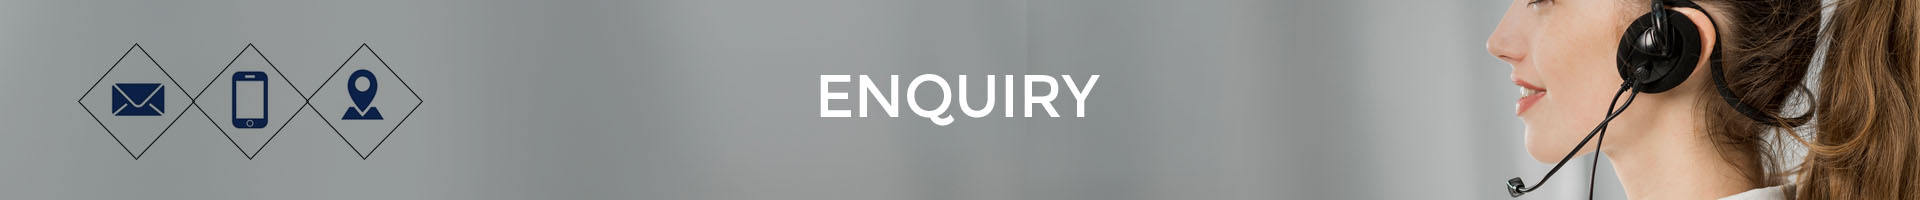 enquiry-banner